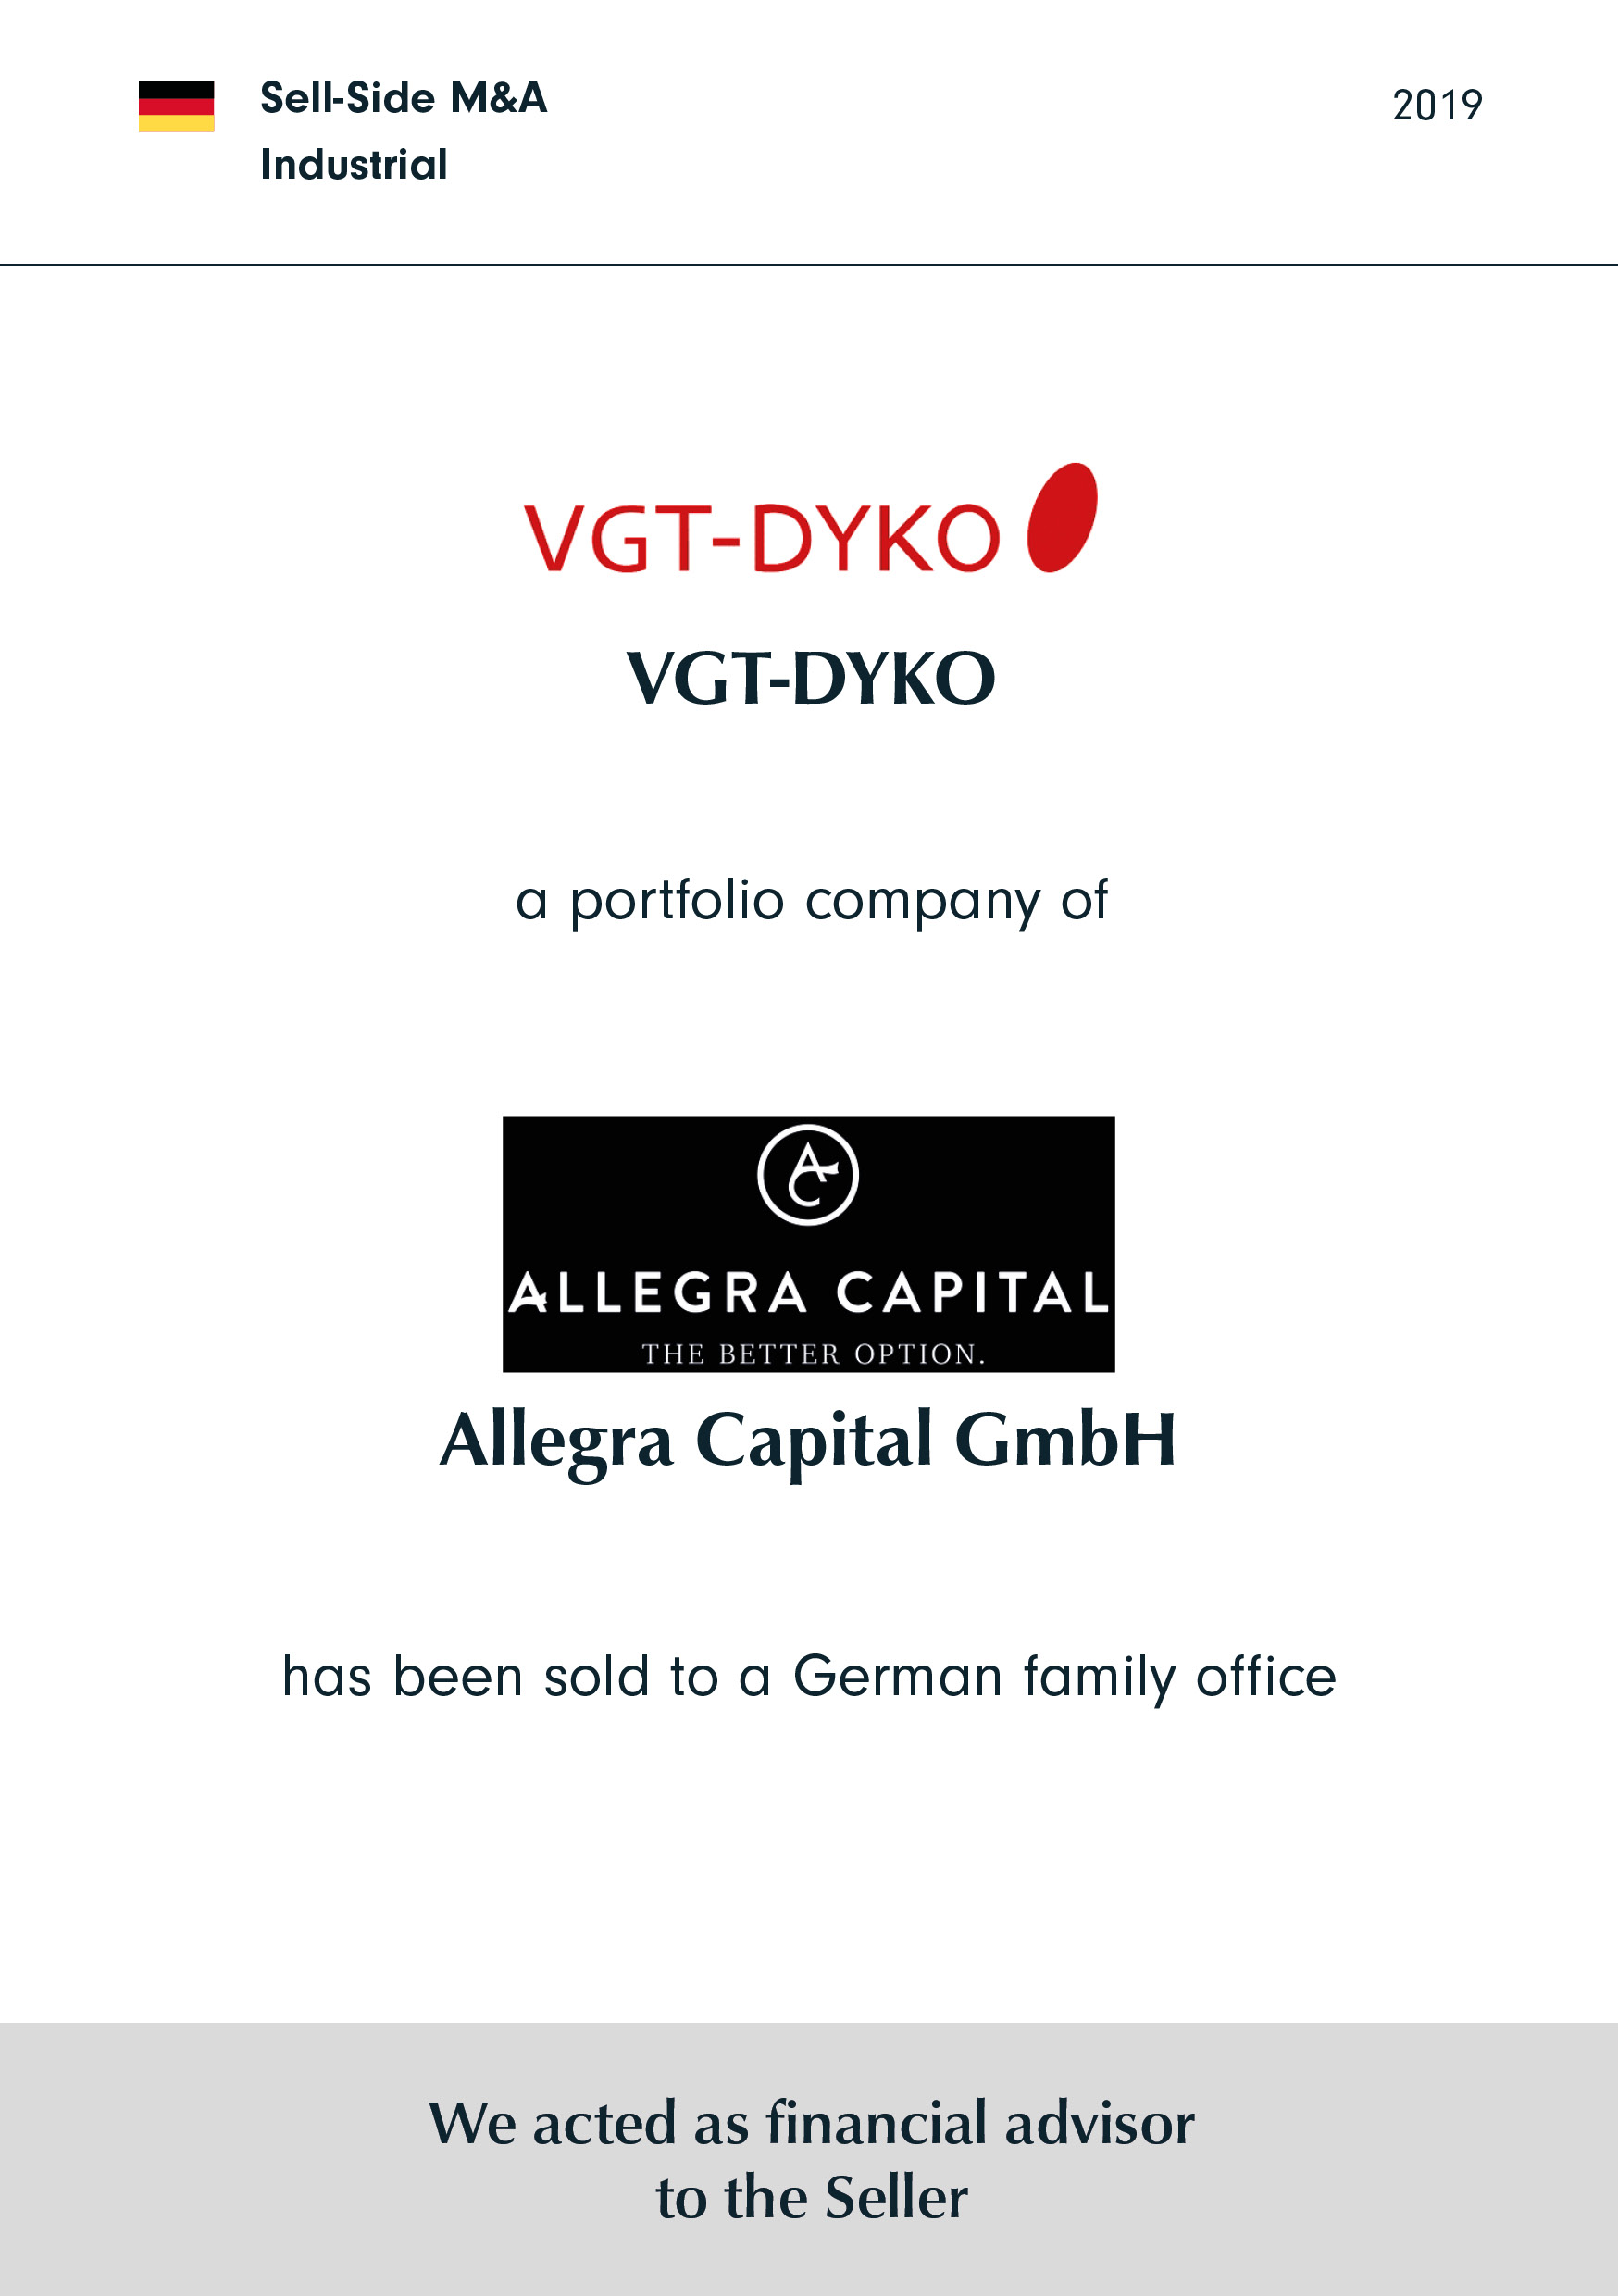 VGT-DYKO | a portfolio company of | Allegra Capital | has been sold to a German family office